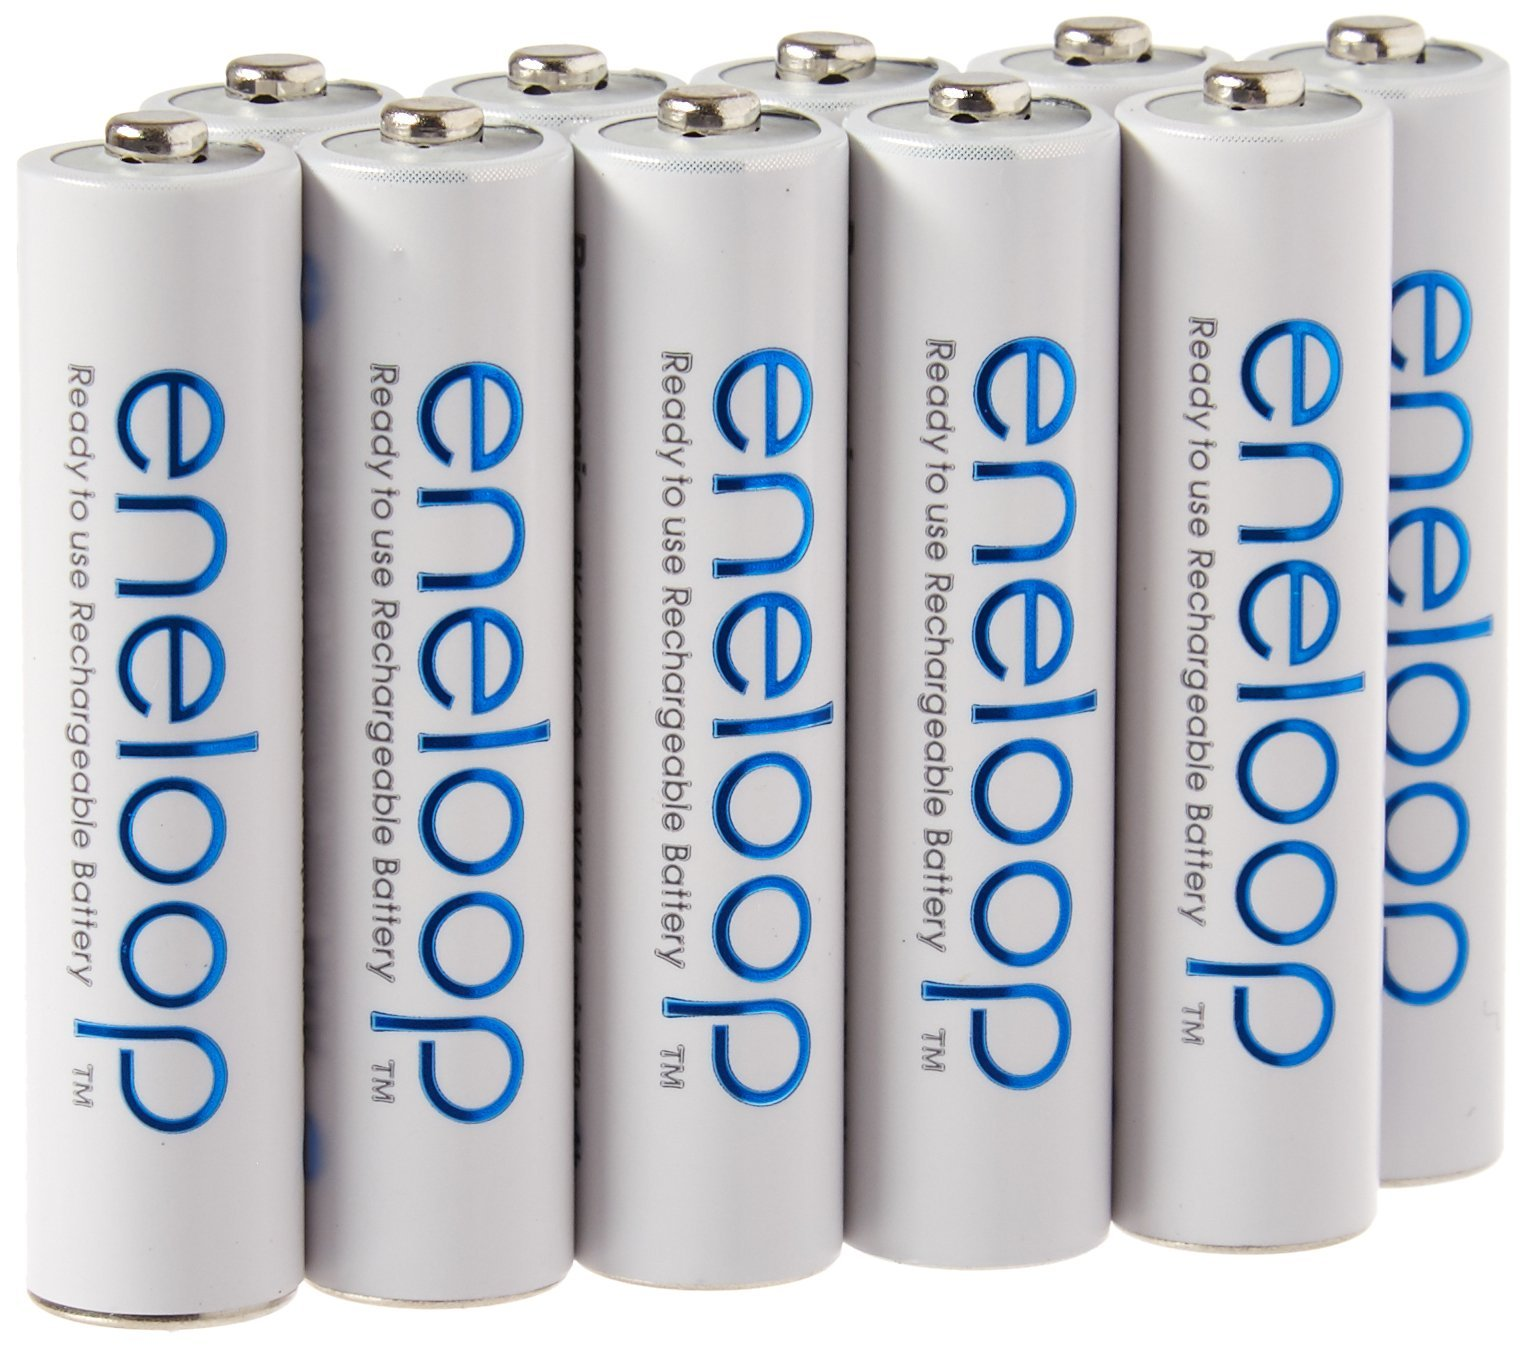 Eneloop TS-9RO6-4EQX AAA 4th Generation 800mAh Min. 750mAh NiMH Pre-Charged Rechargeable Battery with Holder Pack of 10